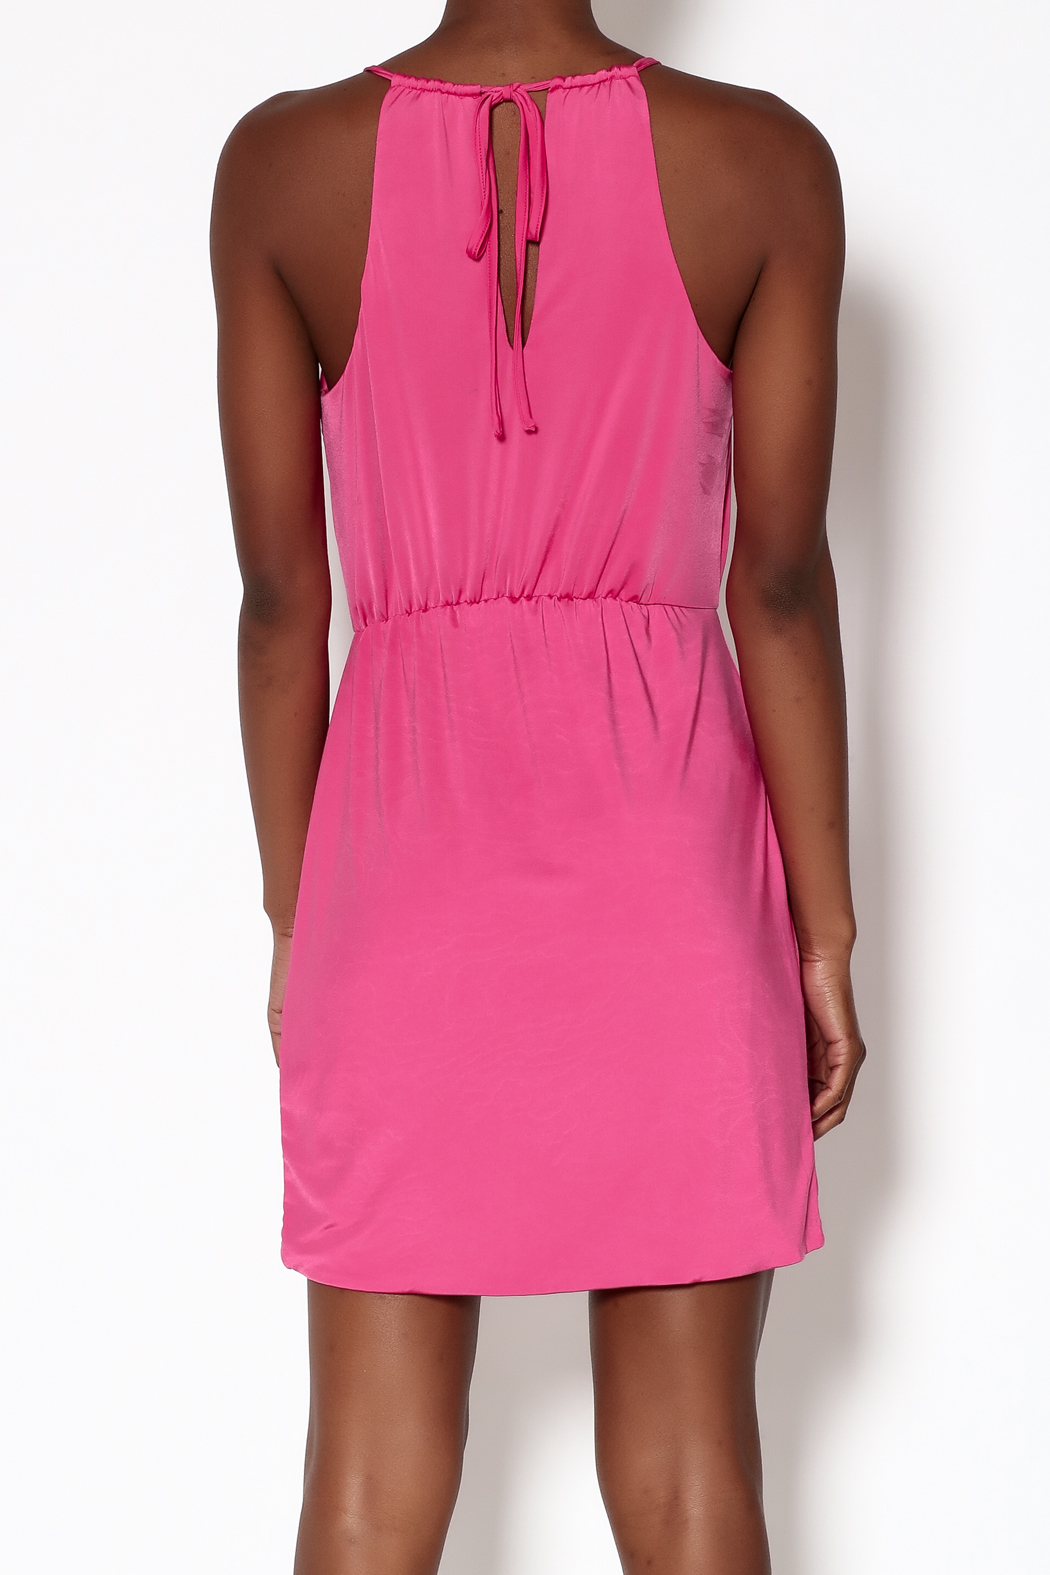 Lovers + Friends Pink Muse Dress - Back Cropped Image